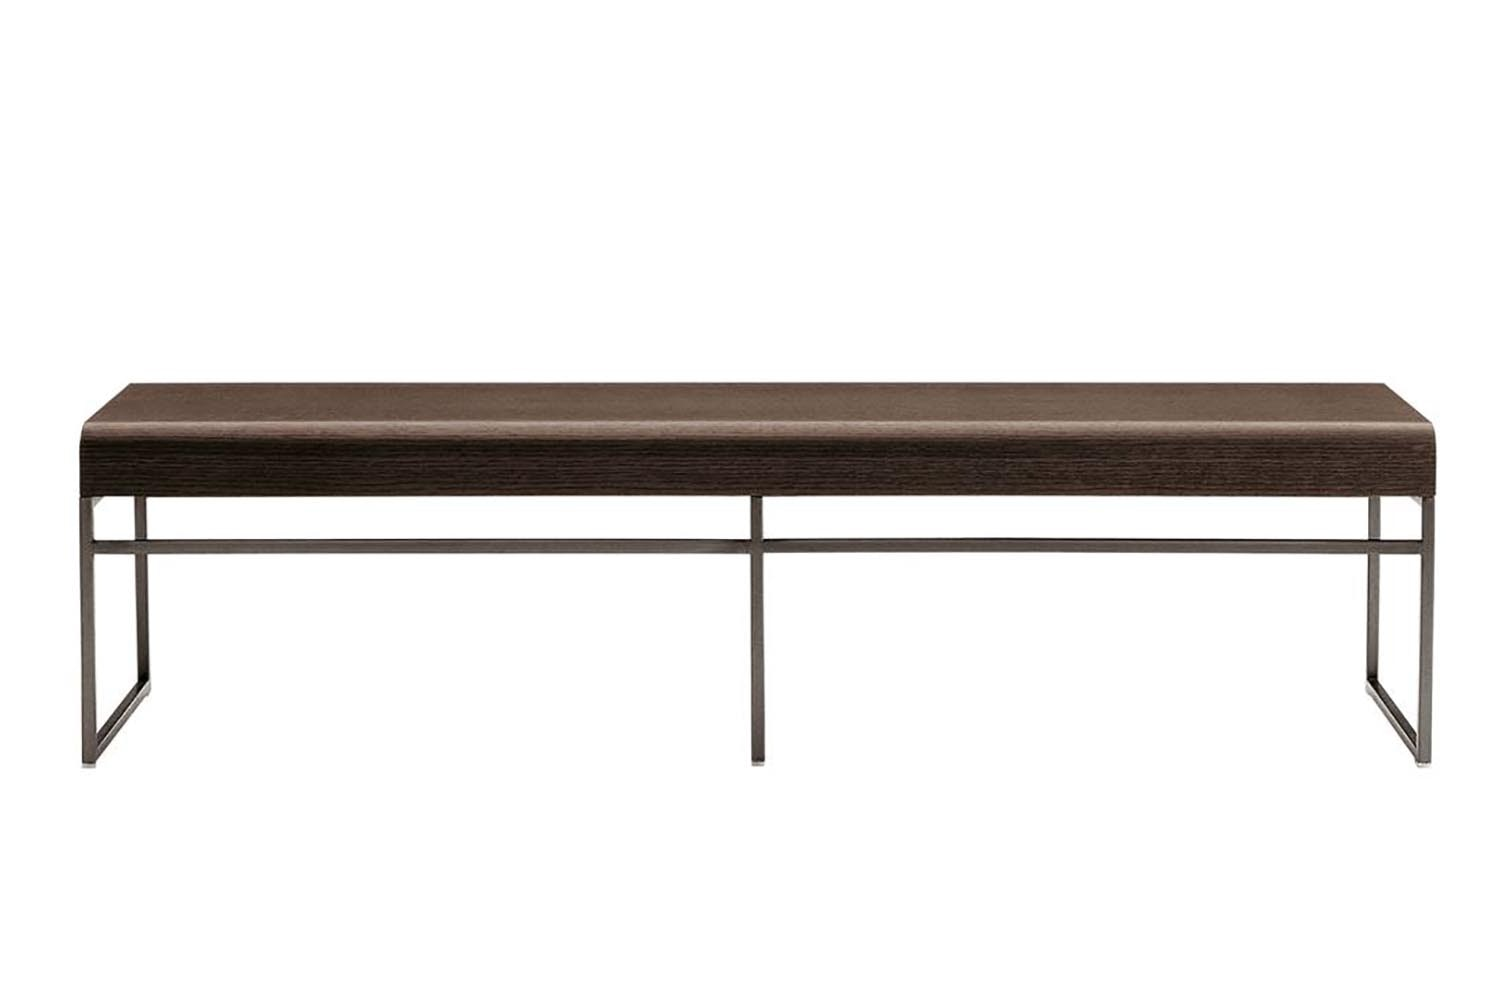 Elios Bench by Antonio Citterio for Maxalto